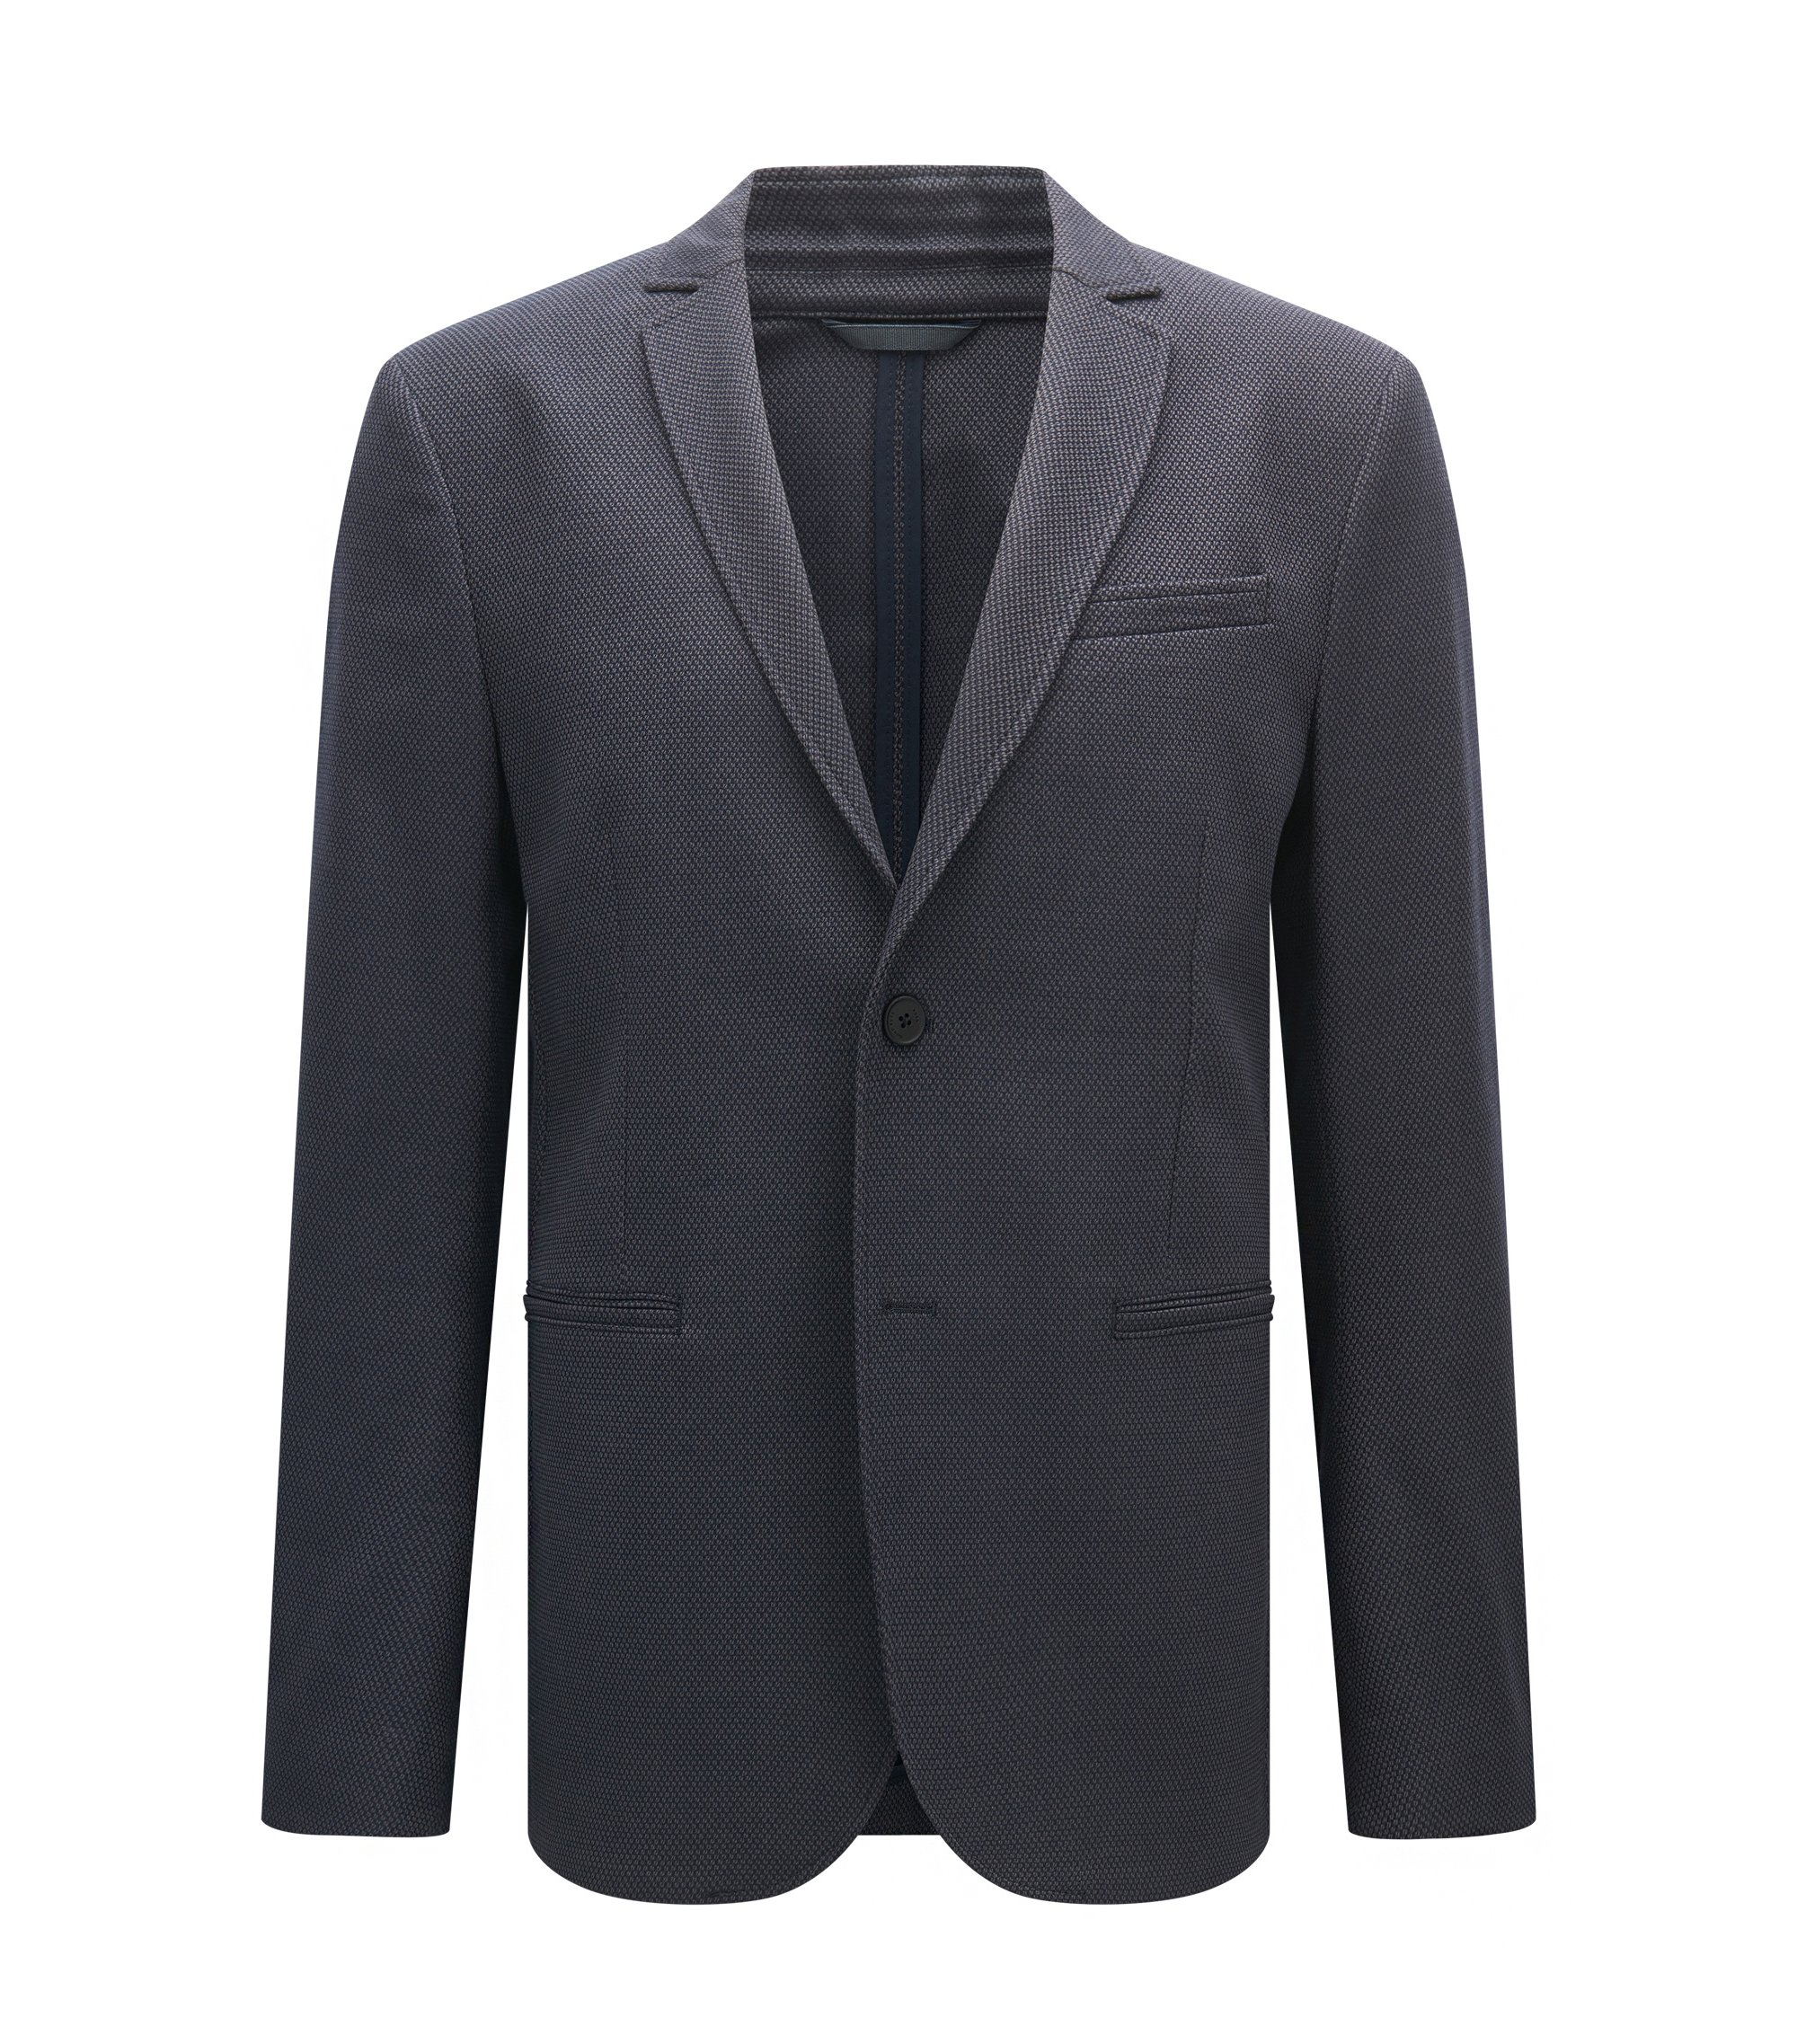 Dobby Cotton Blend Sport Coat, Regular Fit | Amico, Dark Blue